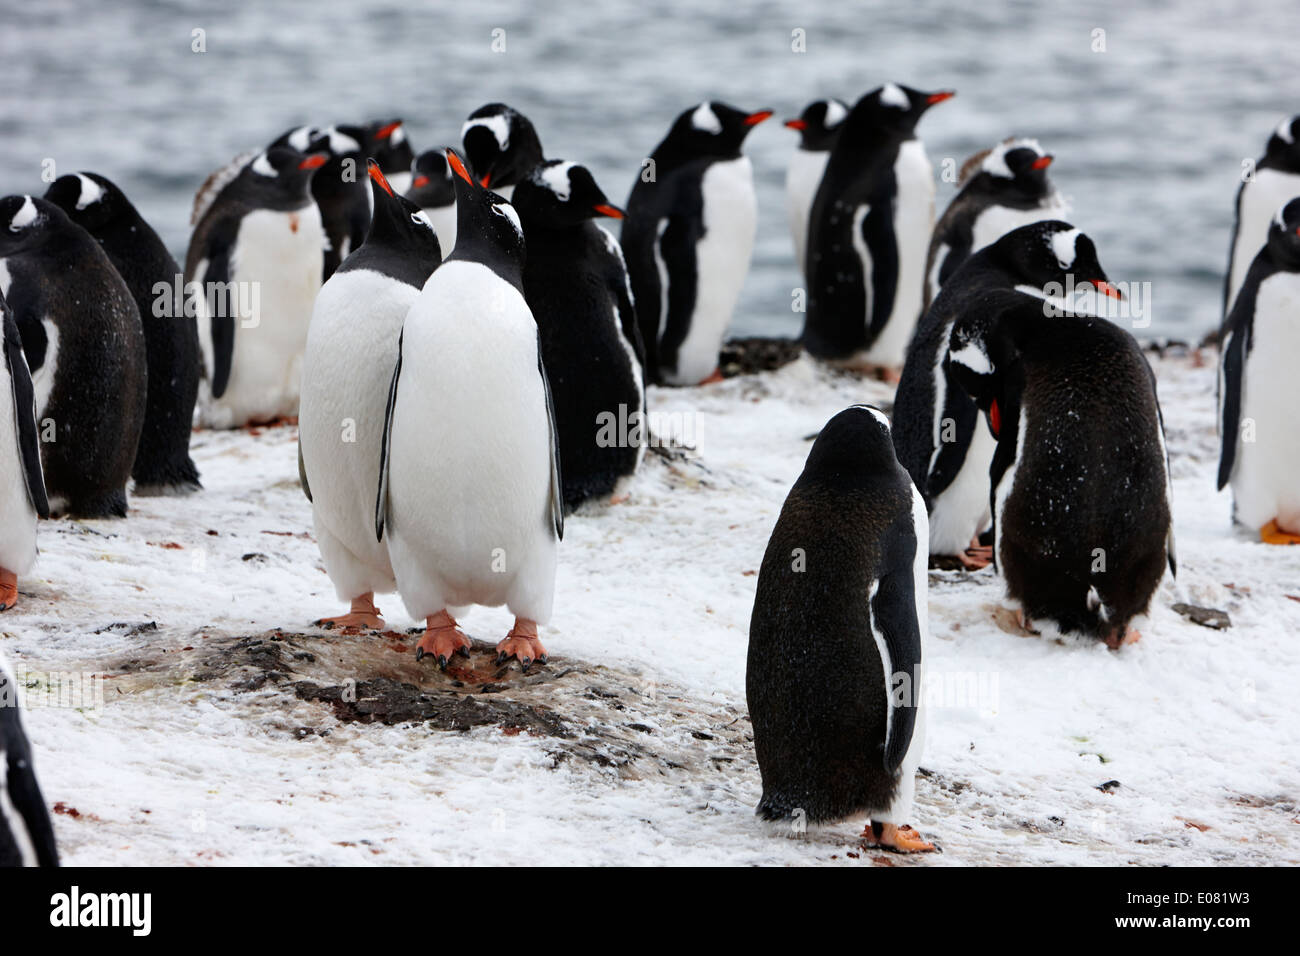 two gentoo penguins mimic behaviour as part of courtship on hannah point Antarctica - Stock Image